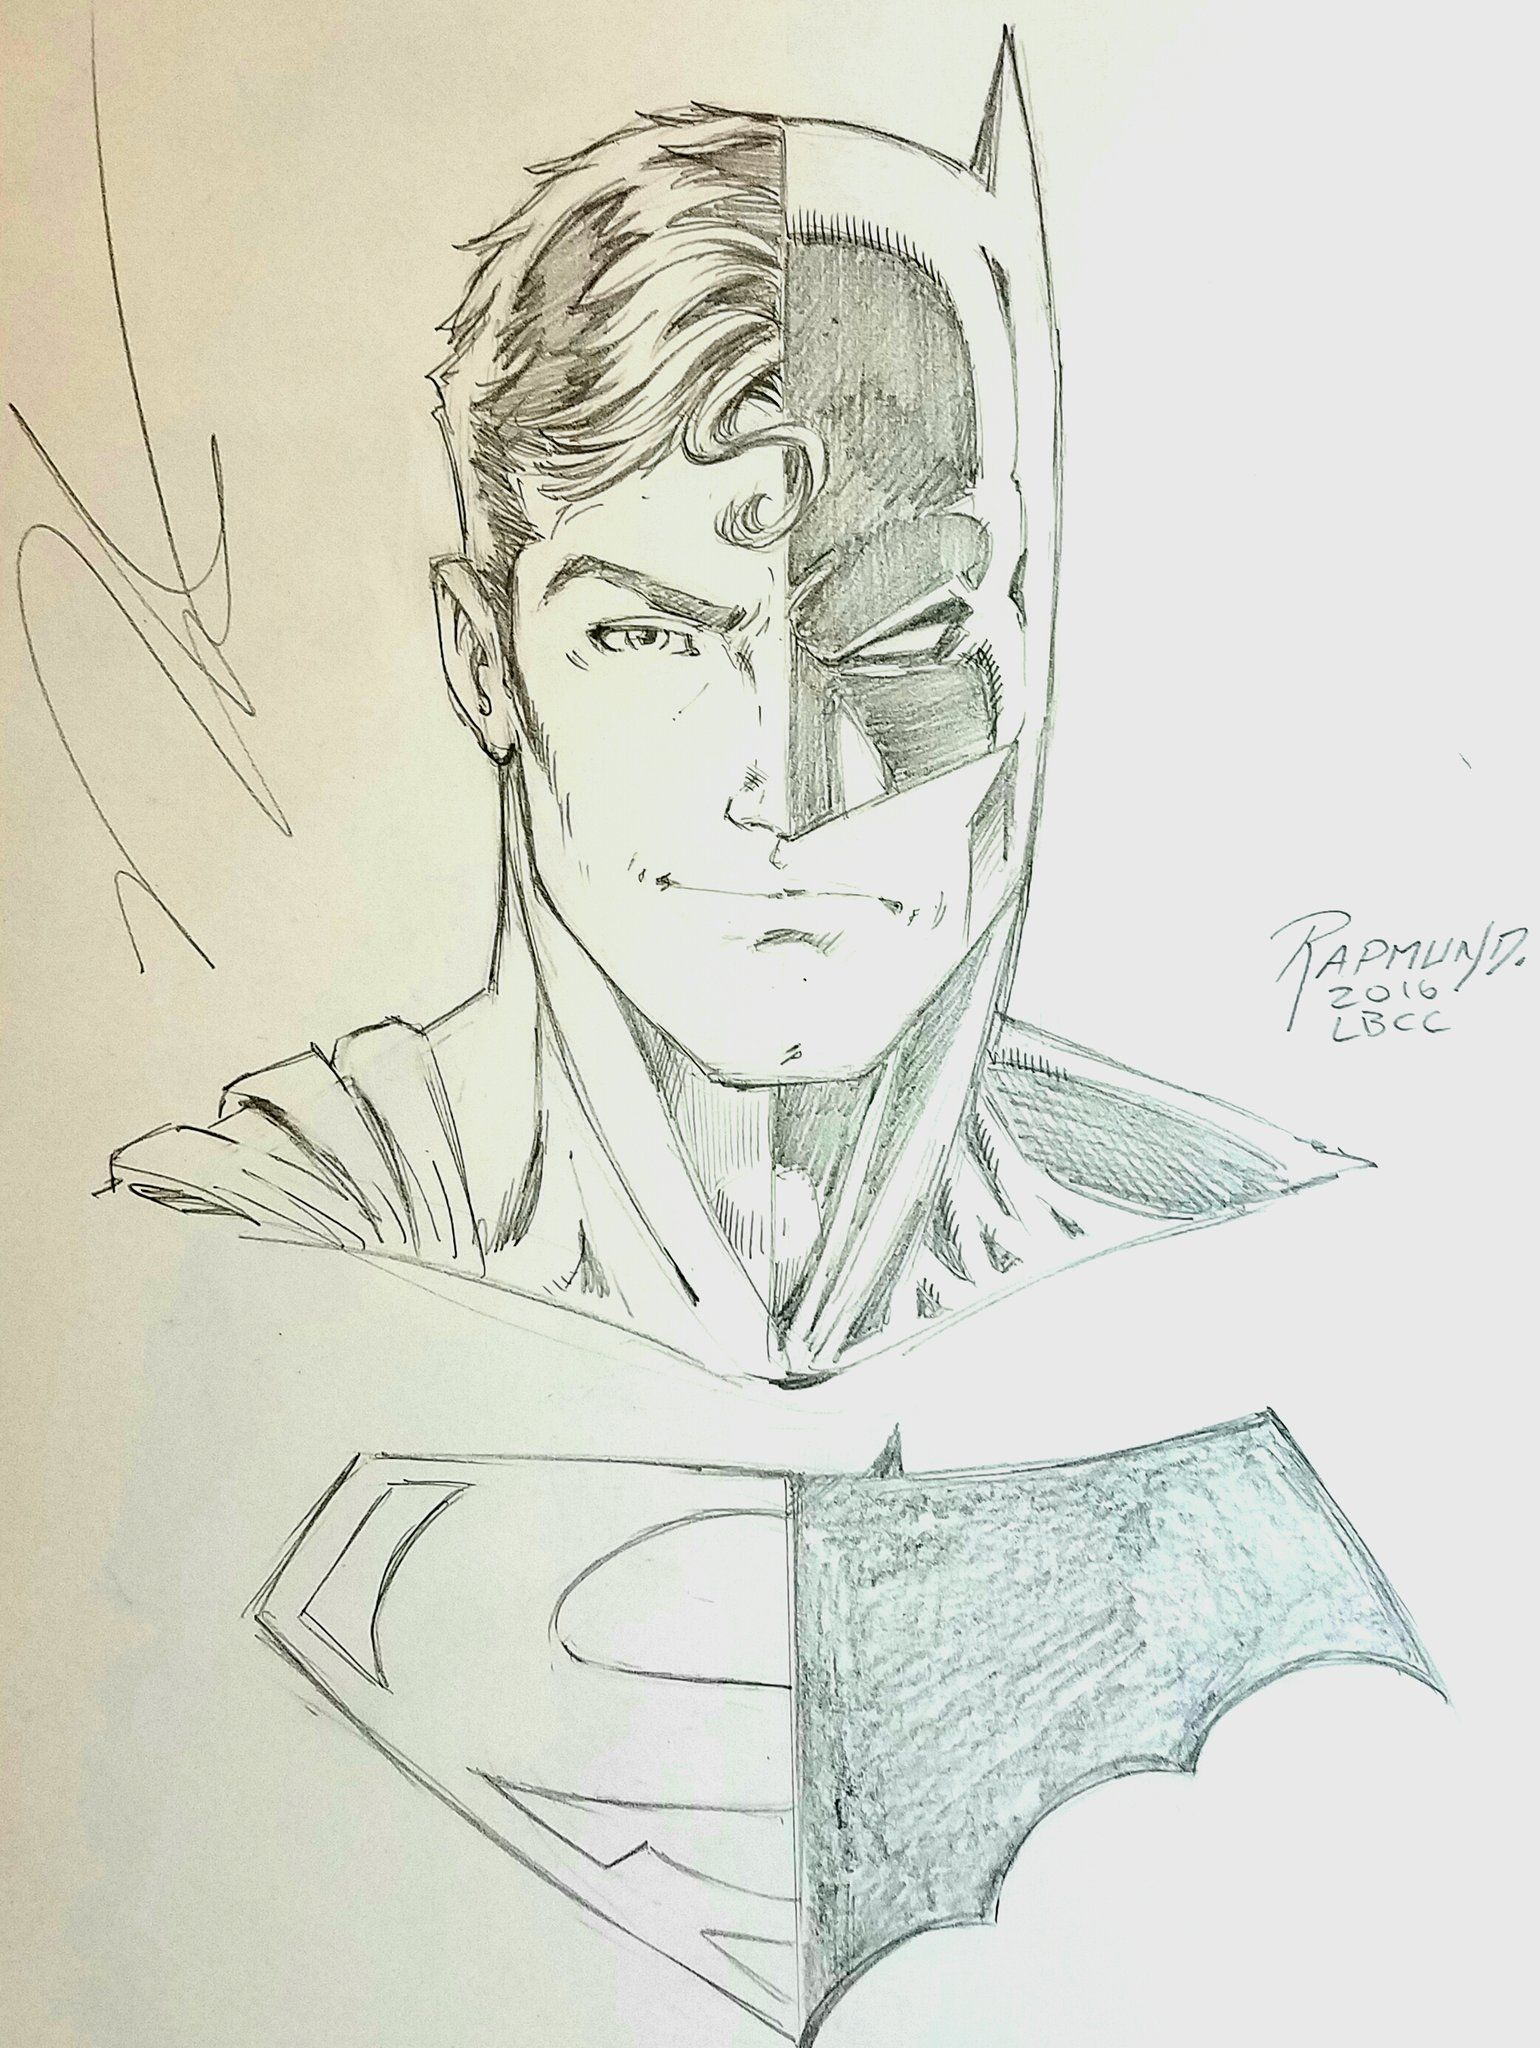 Norm Rapmund Composite Superman Batman Commission